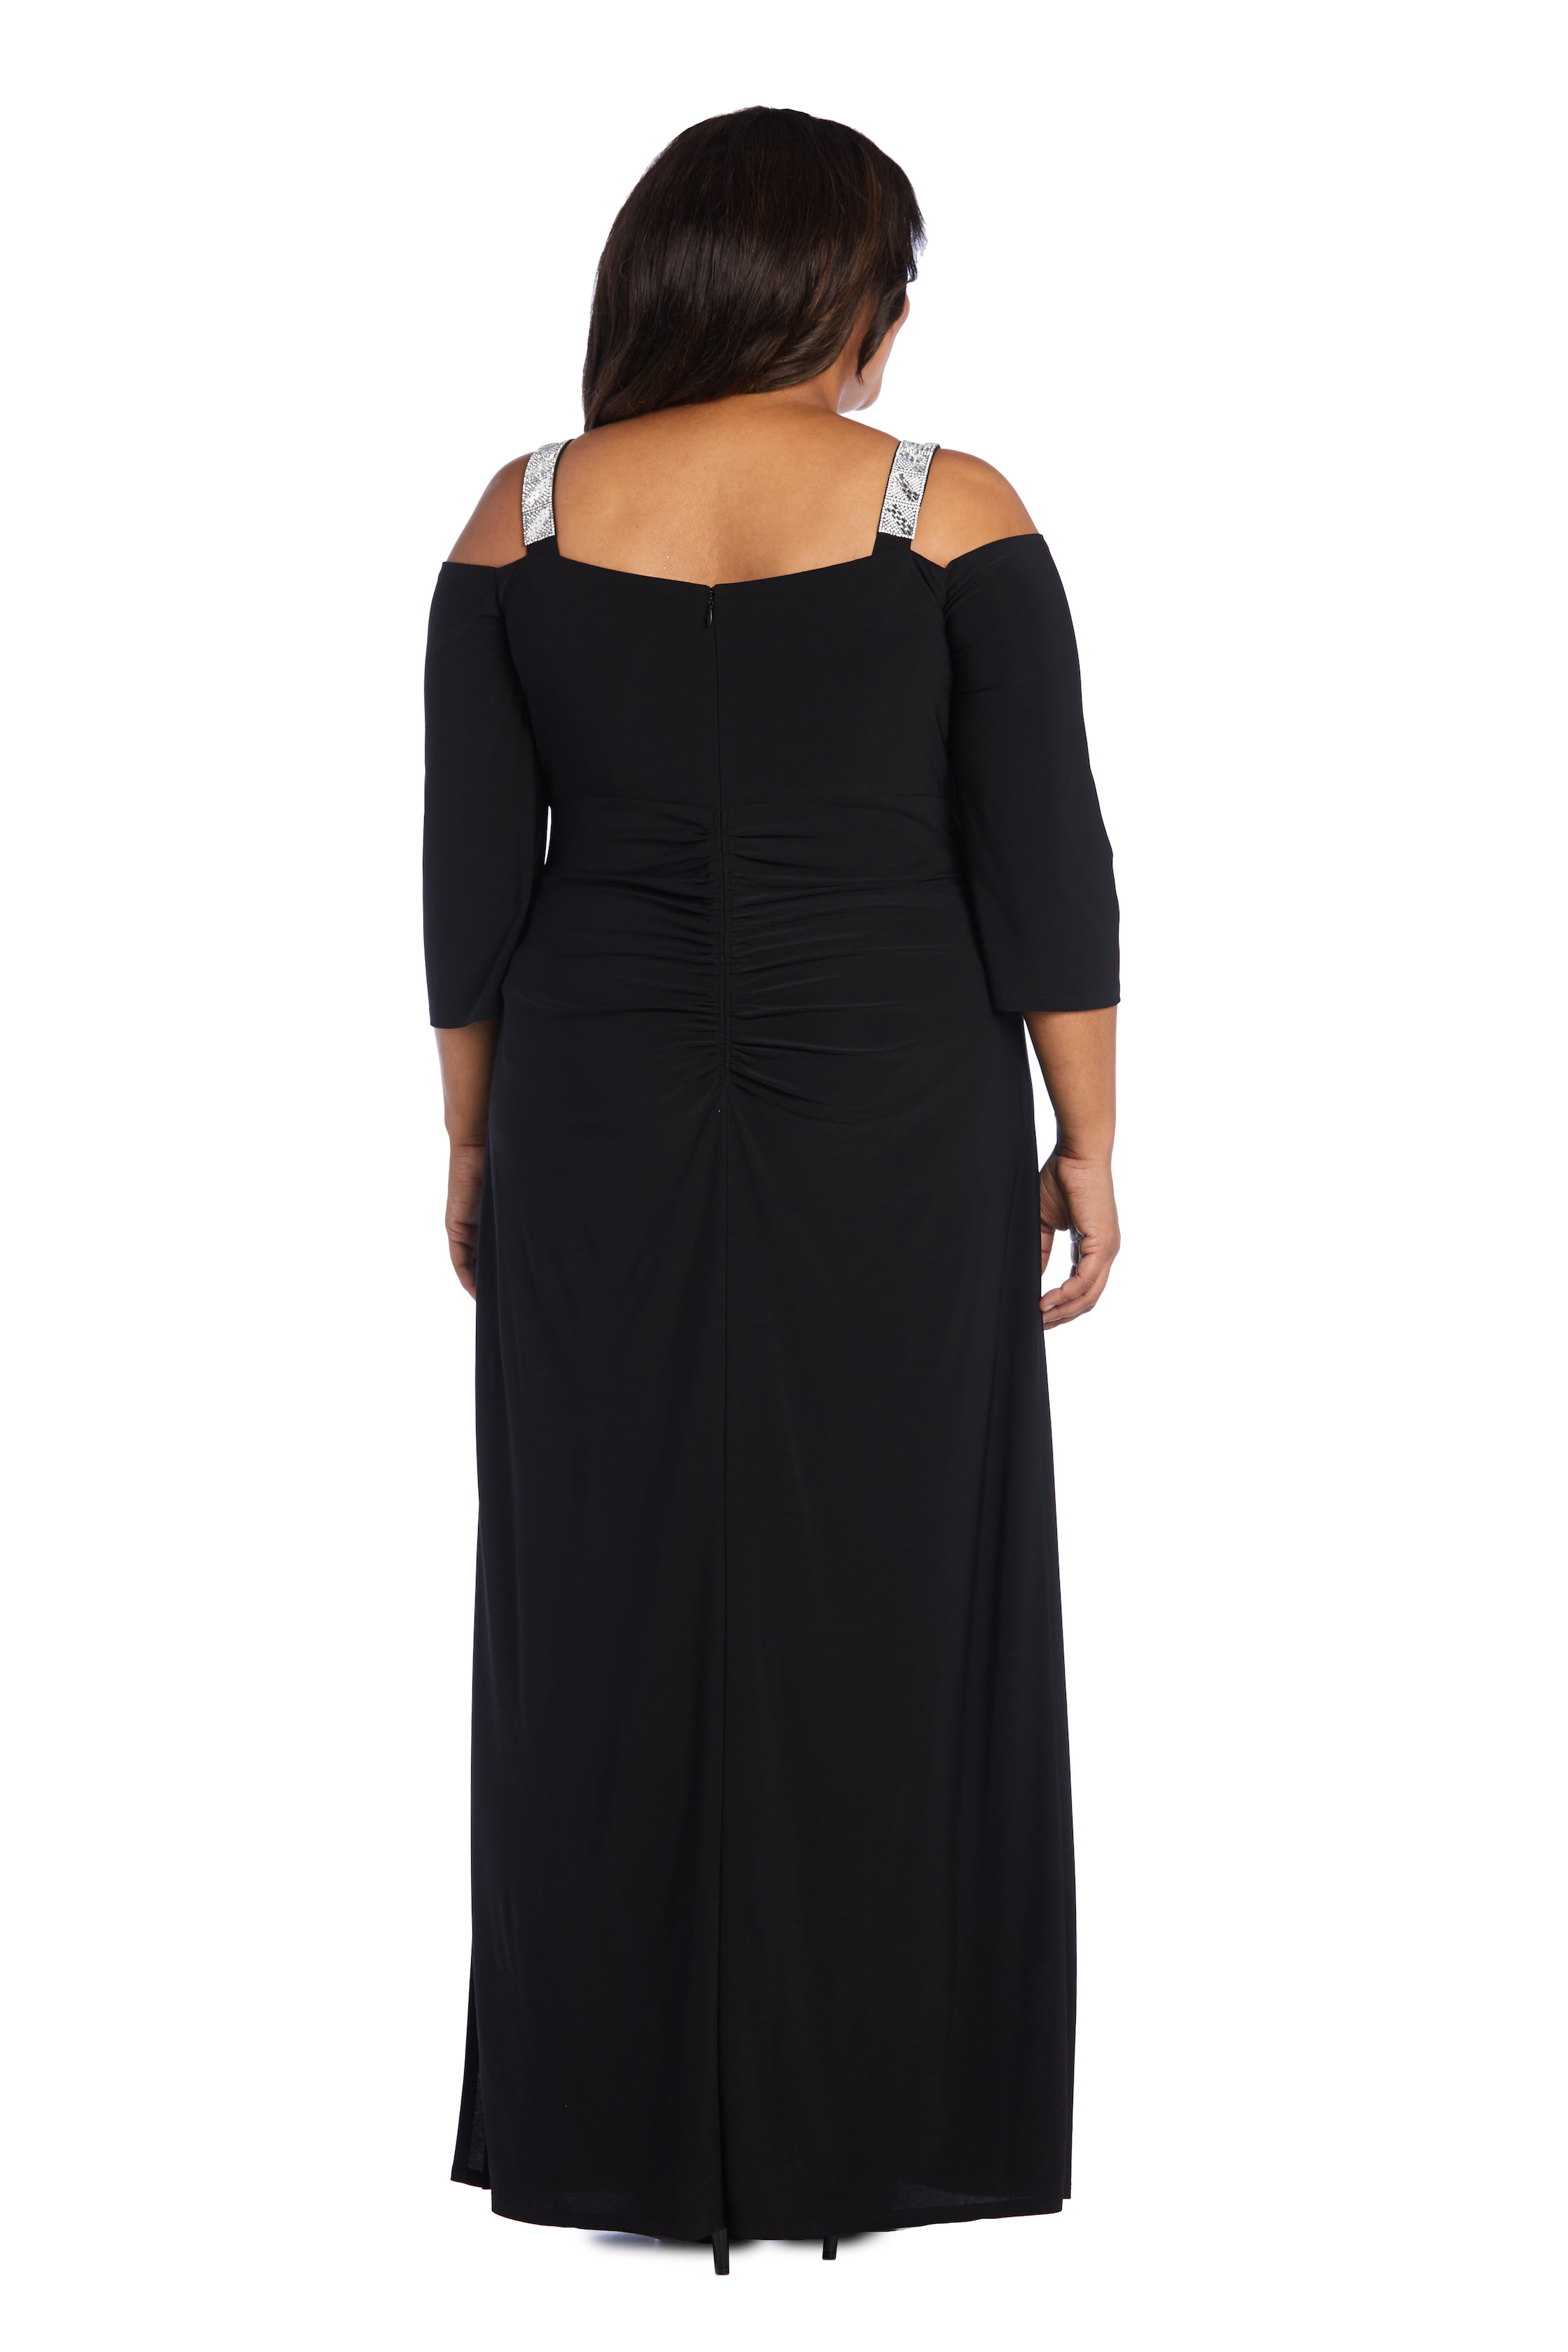 Embellished Cold Shoulder Gown - Black - Back